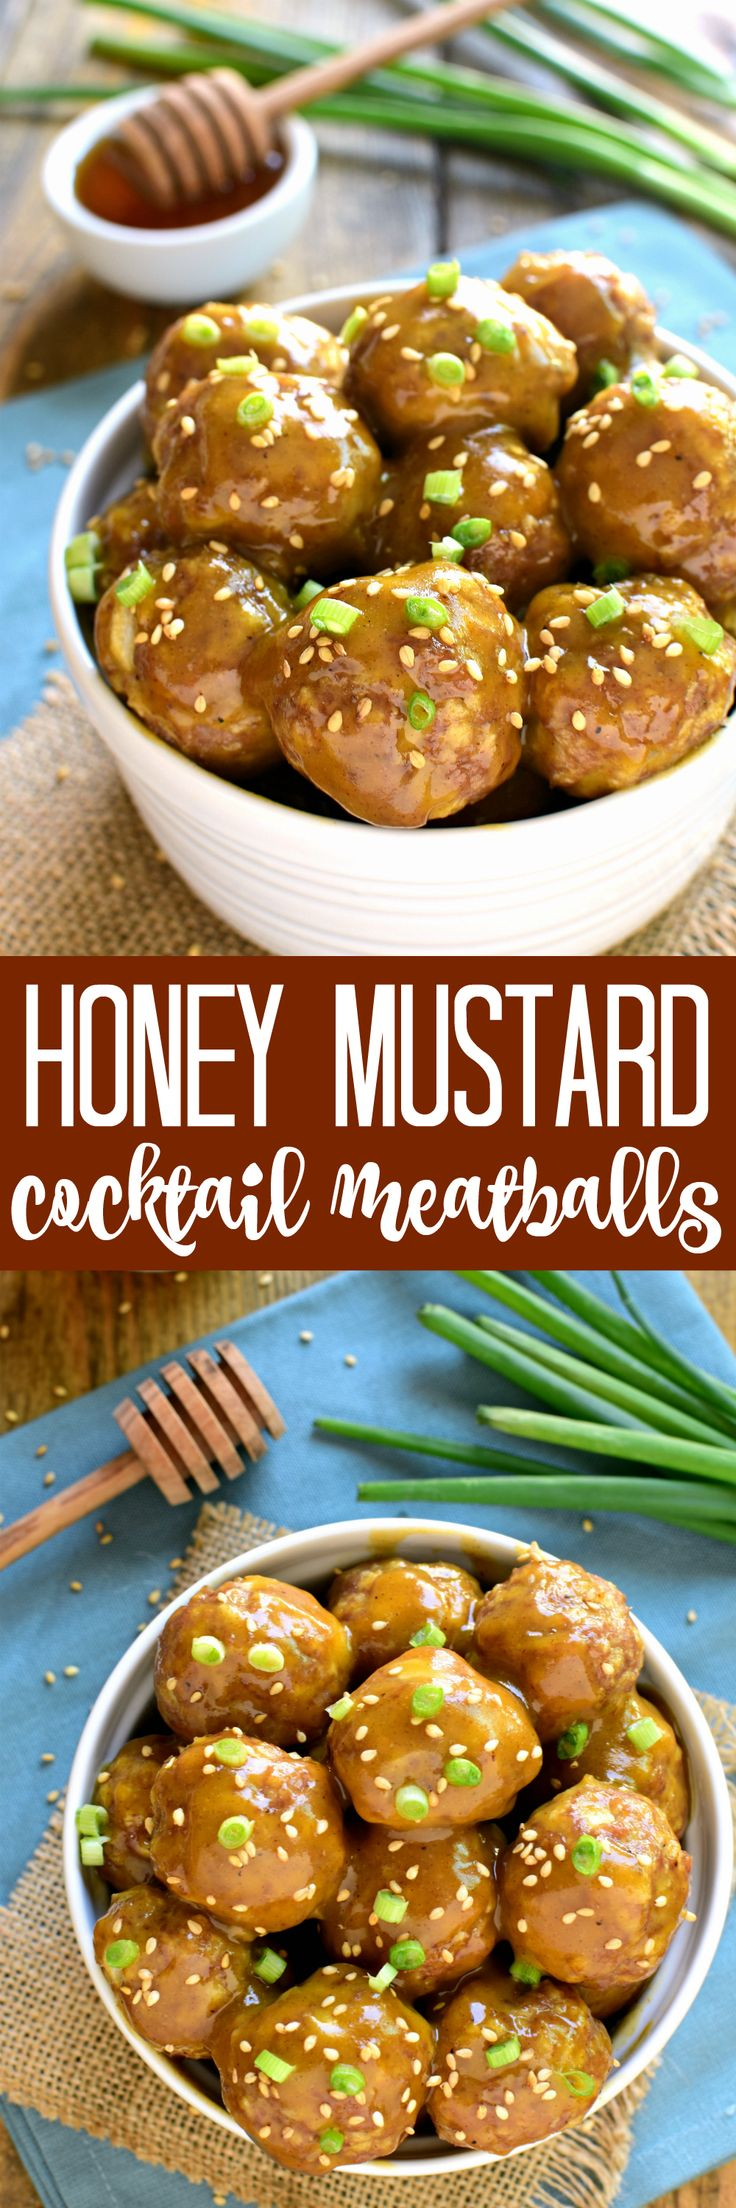 These Honey Mustard Cocktail Meatballs are one of our favorite appetizers! The perfect blend of savory and sweet, they're guaranteed to be the hit of your next party! @philsfresheggs #ad